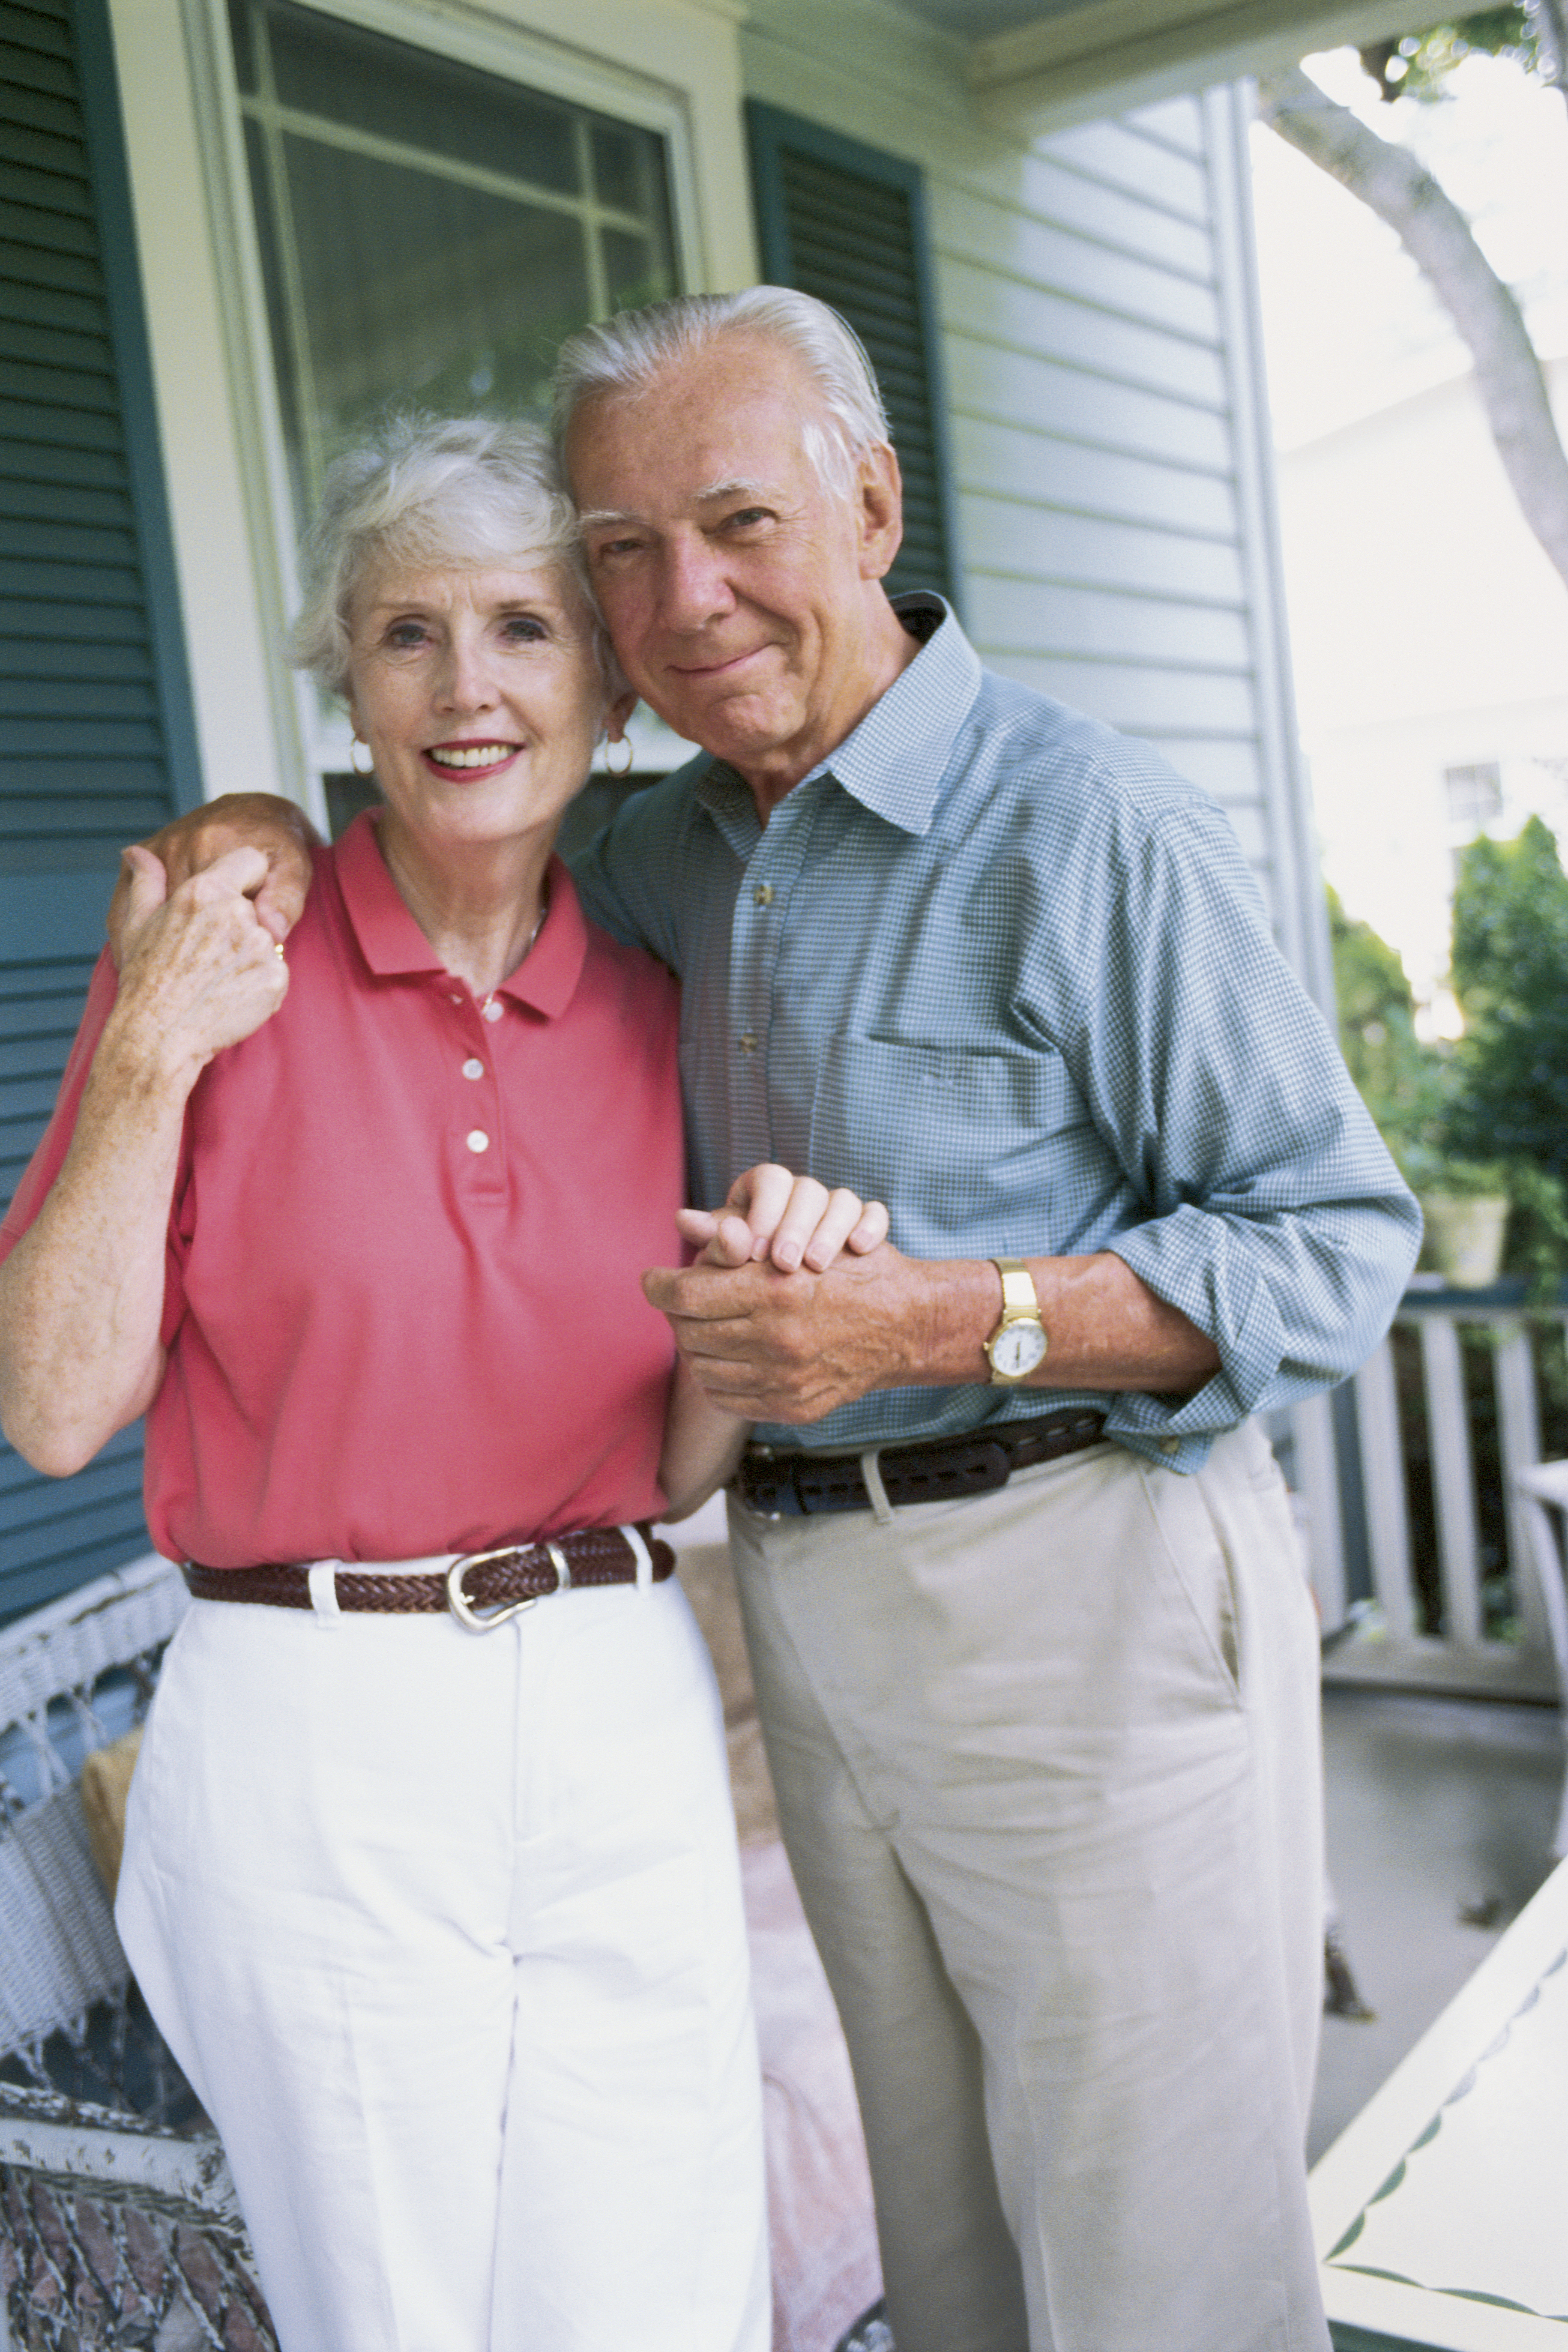 Seniors - Should I Stay or Should I Go?  Selling your home is a hard decision!